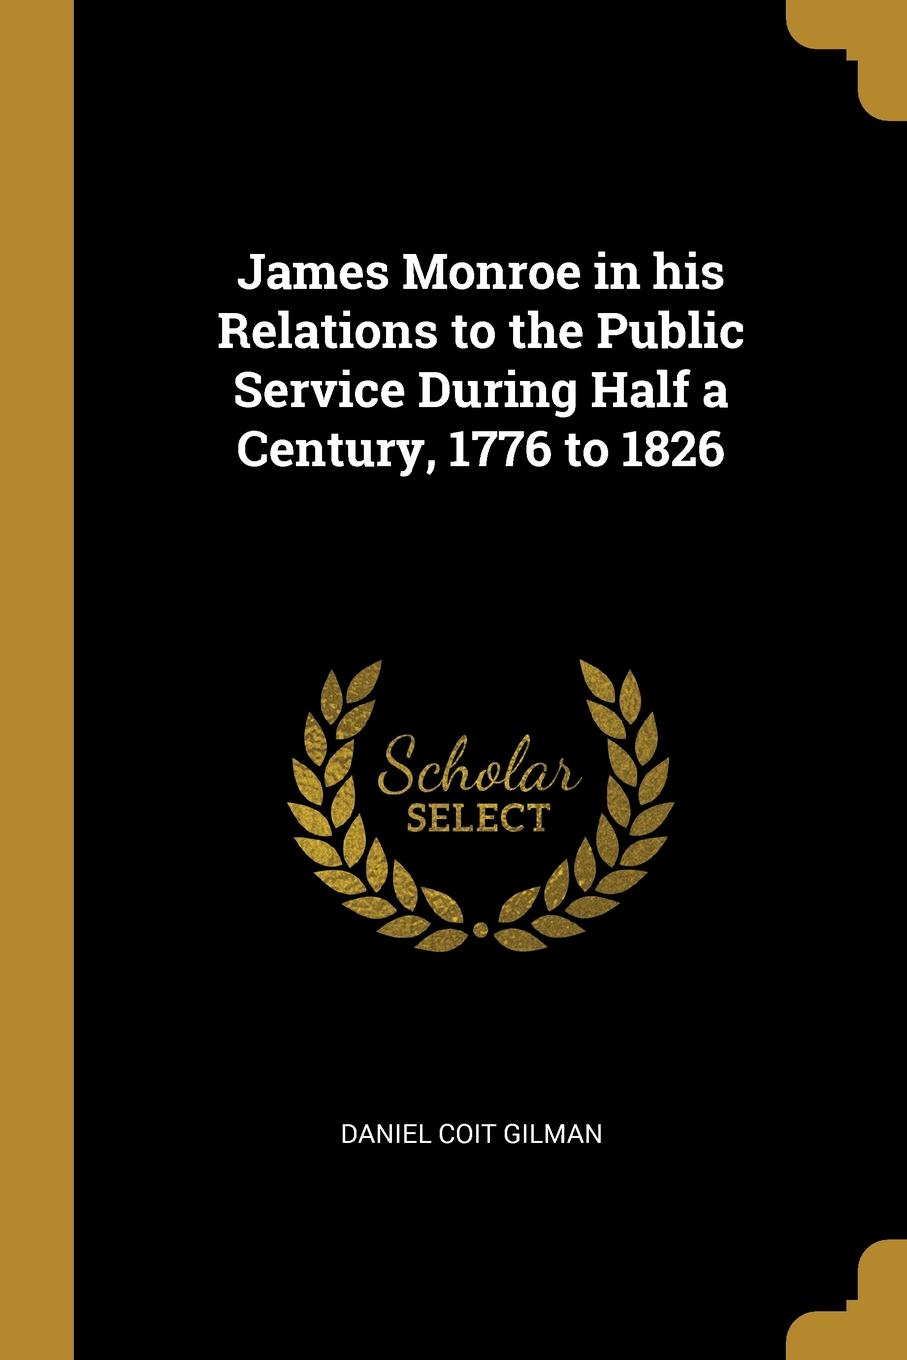 Daniel Coit Gilman James Monroe in his Relations to the Public Service During Half a Century, 1776 to 1826